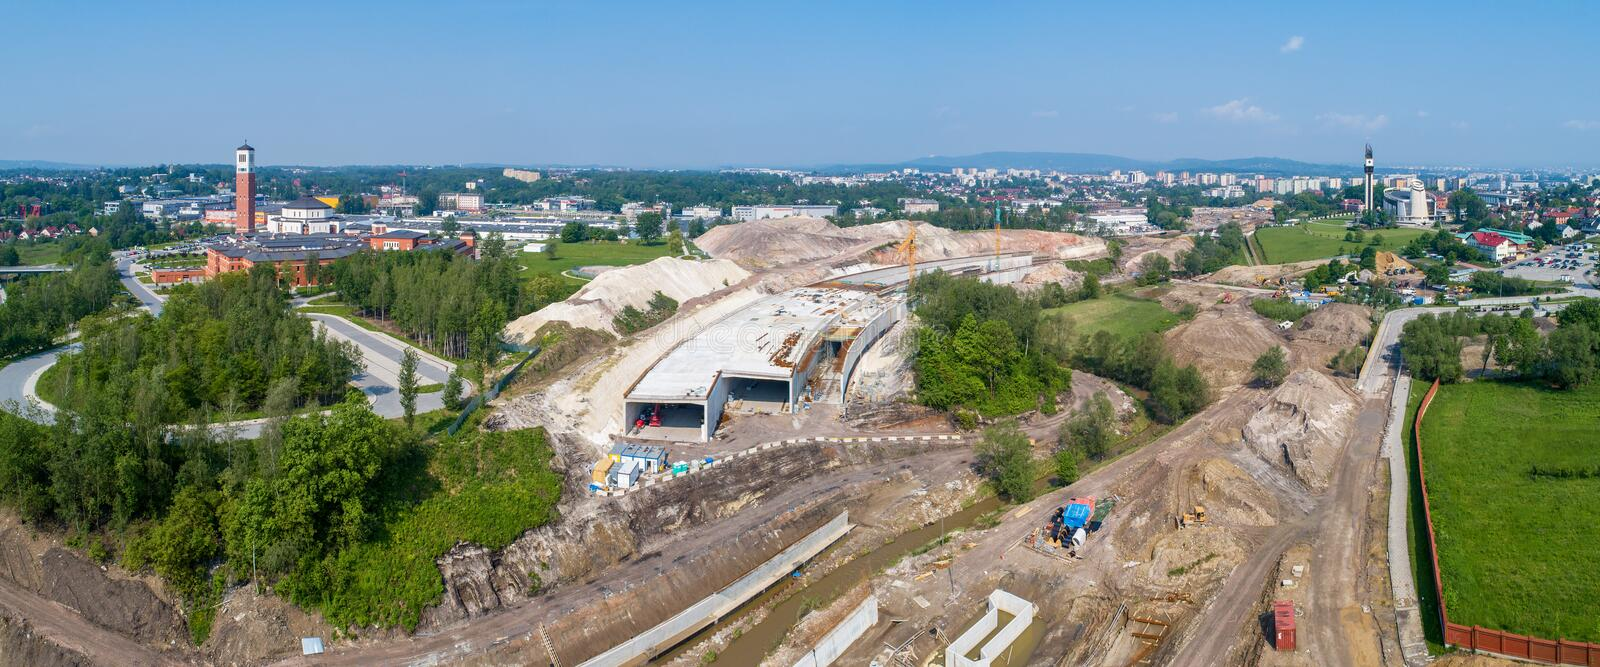 Speedway with tunnel under construction in Cracow, Poland royalty free stock photography